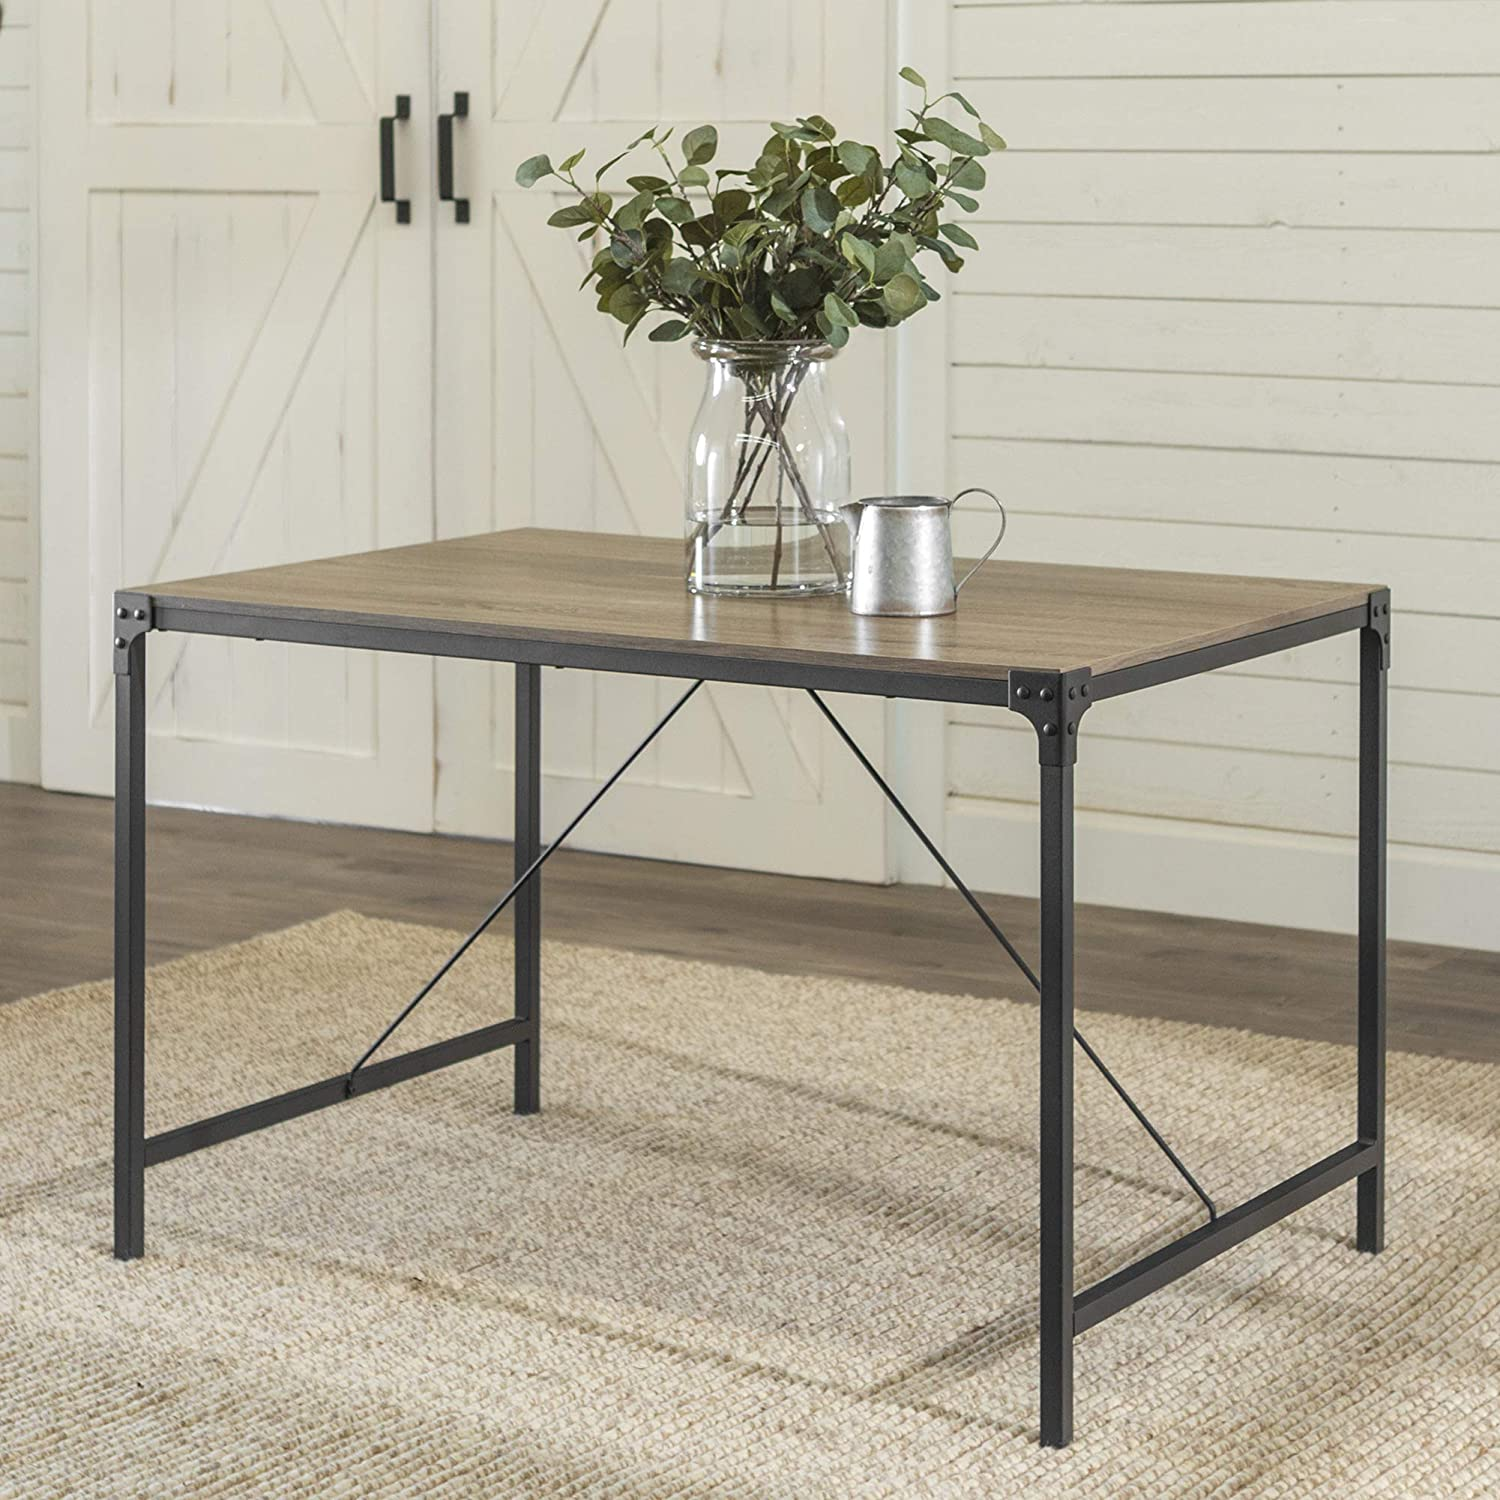 WE Furniture 4 Person Modern Industrial Farmhouse Wood Rectangle Kitchen Dining Table, 48 Inch, Grey/Brown